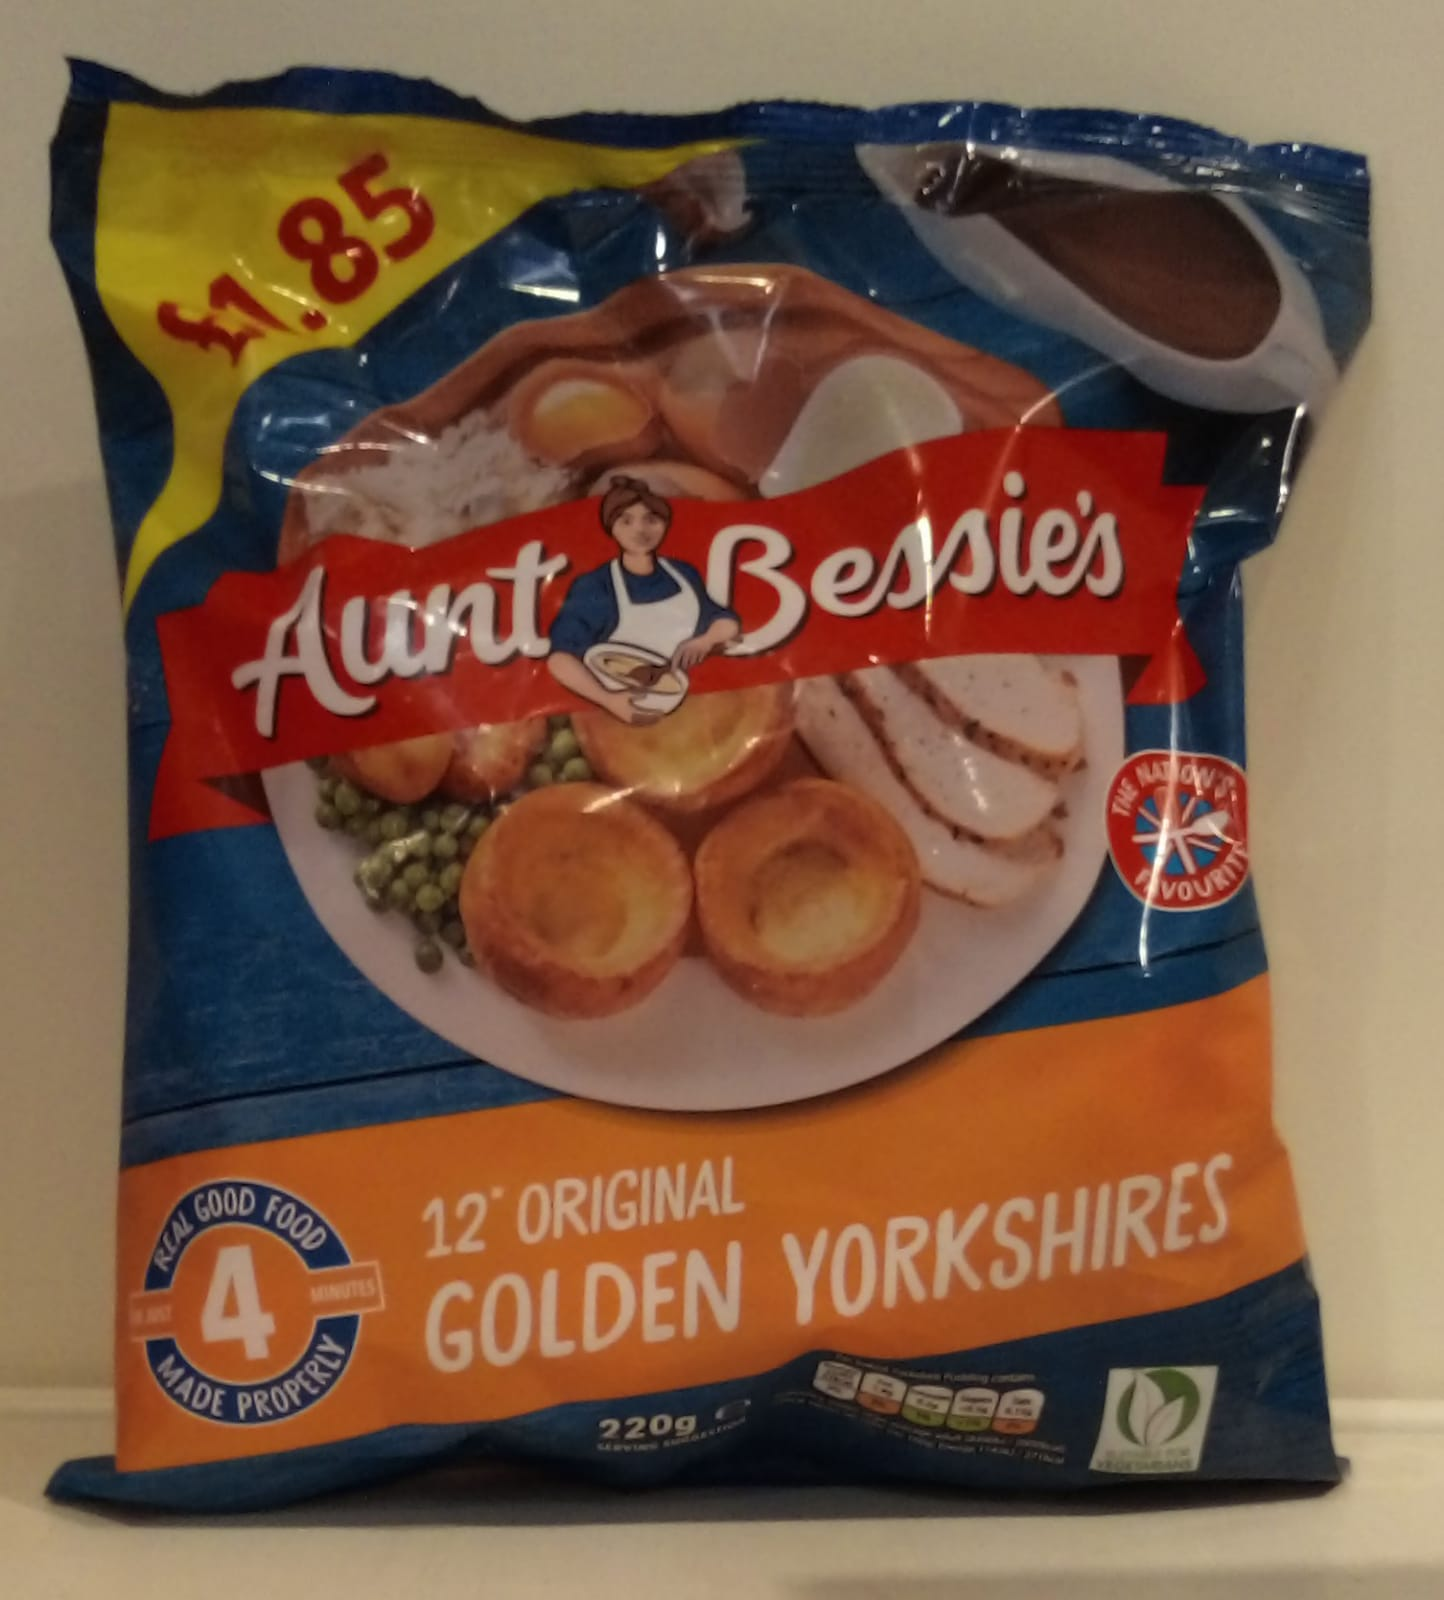 Aunt Bessies Golden Yorkshires 12